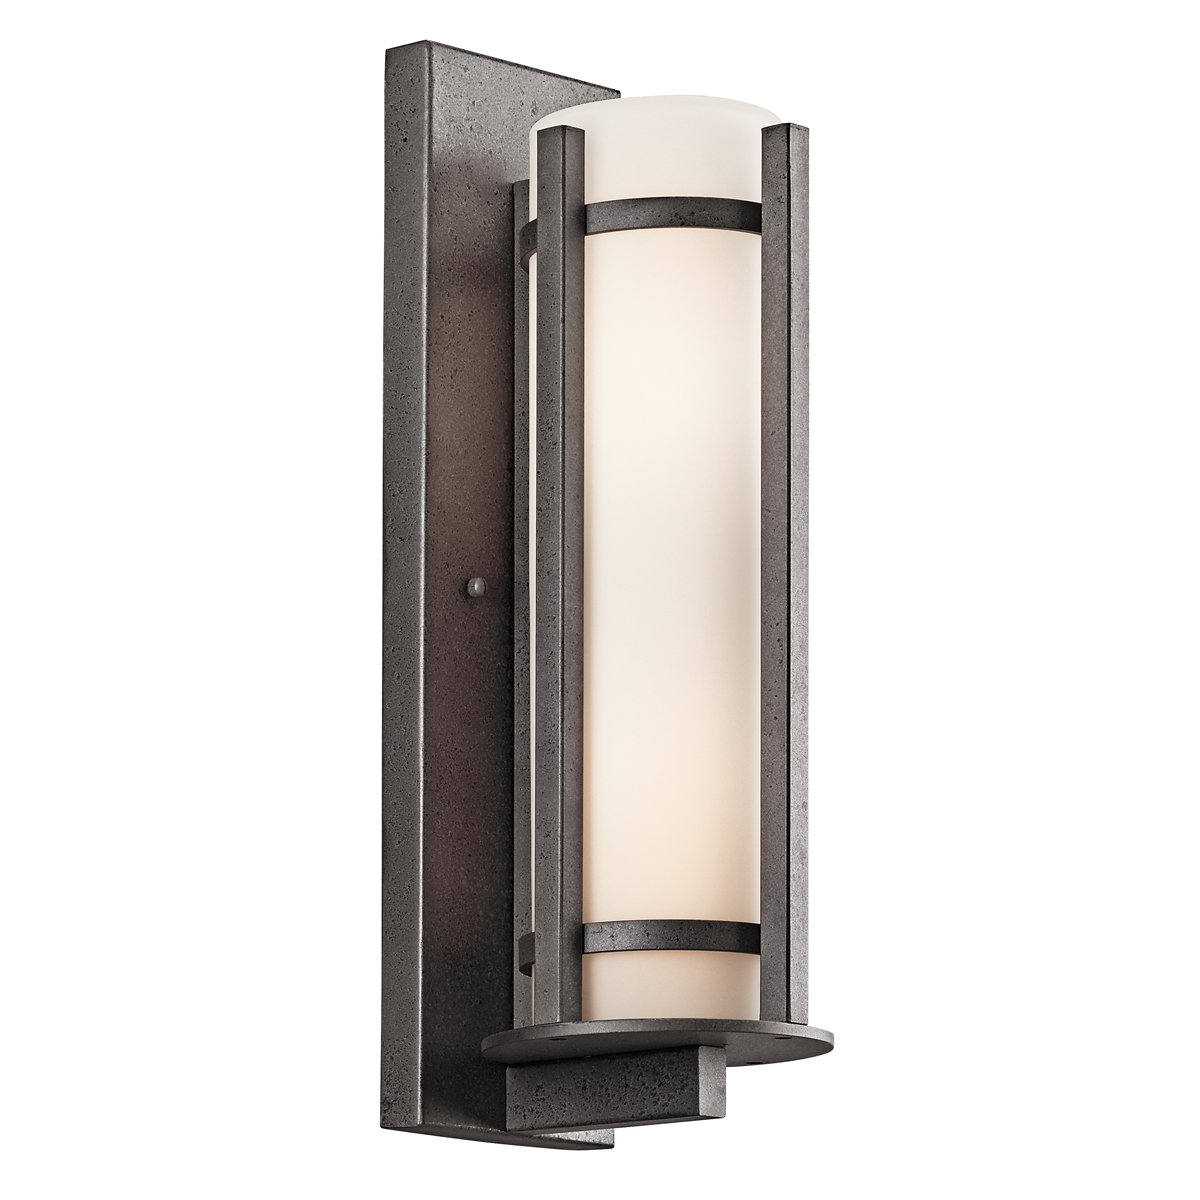 Kichler brushed nickel wall mt 1lt incandescent kichler brushed nickel - Kichler Lighting 49119avi Camden 11 Inch High Light Outdoor Wall Lantern Anvil Iron With Opal Etched Glass Wall Porch Lights Amazon Com